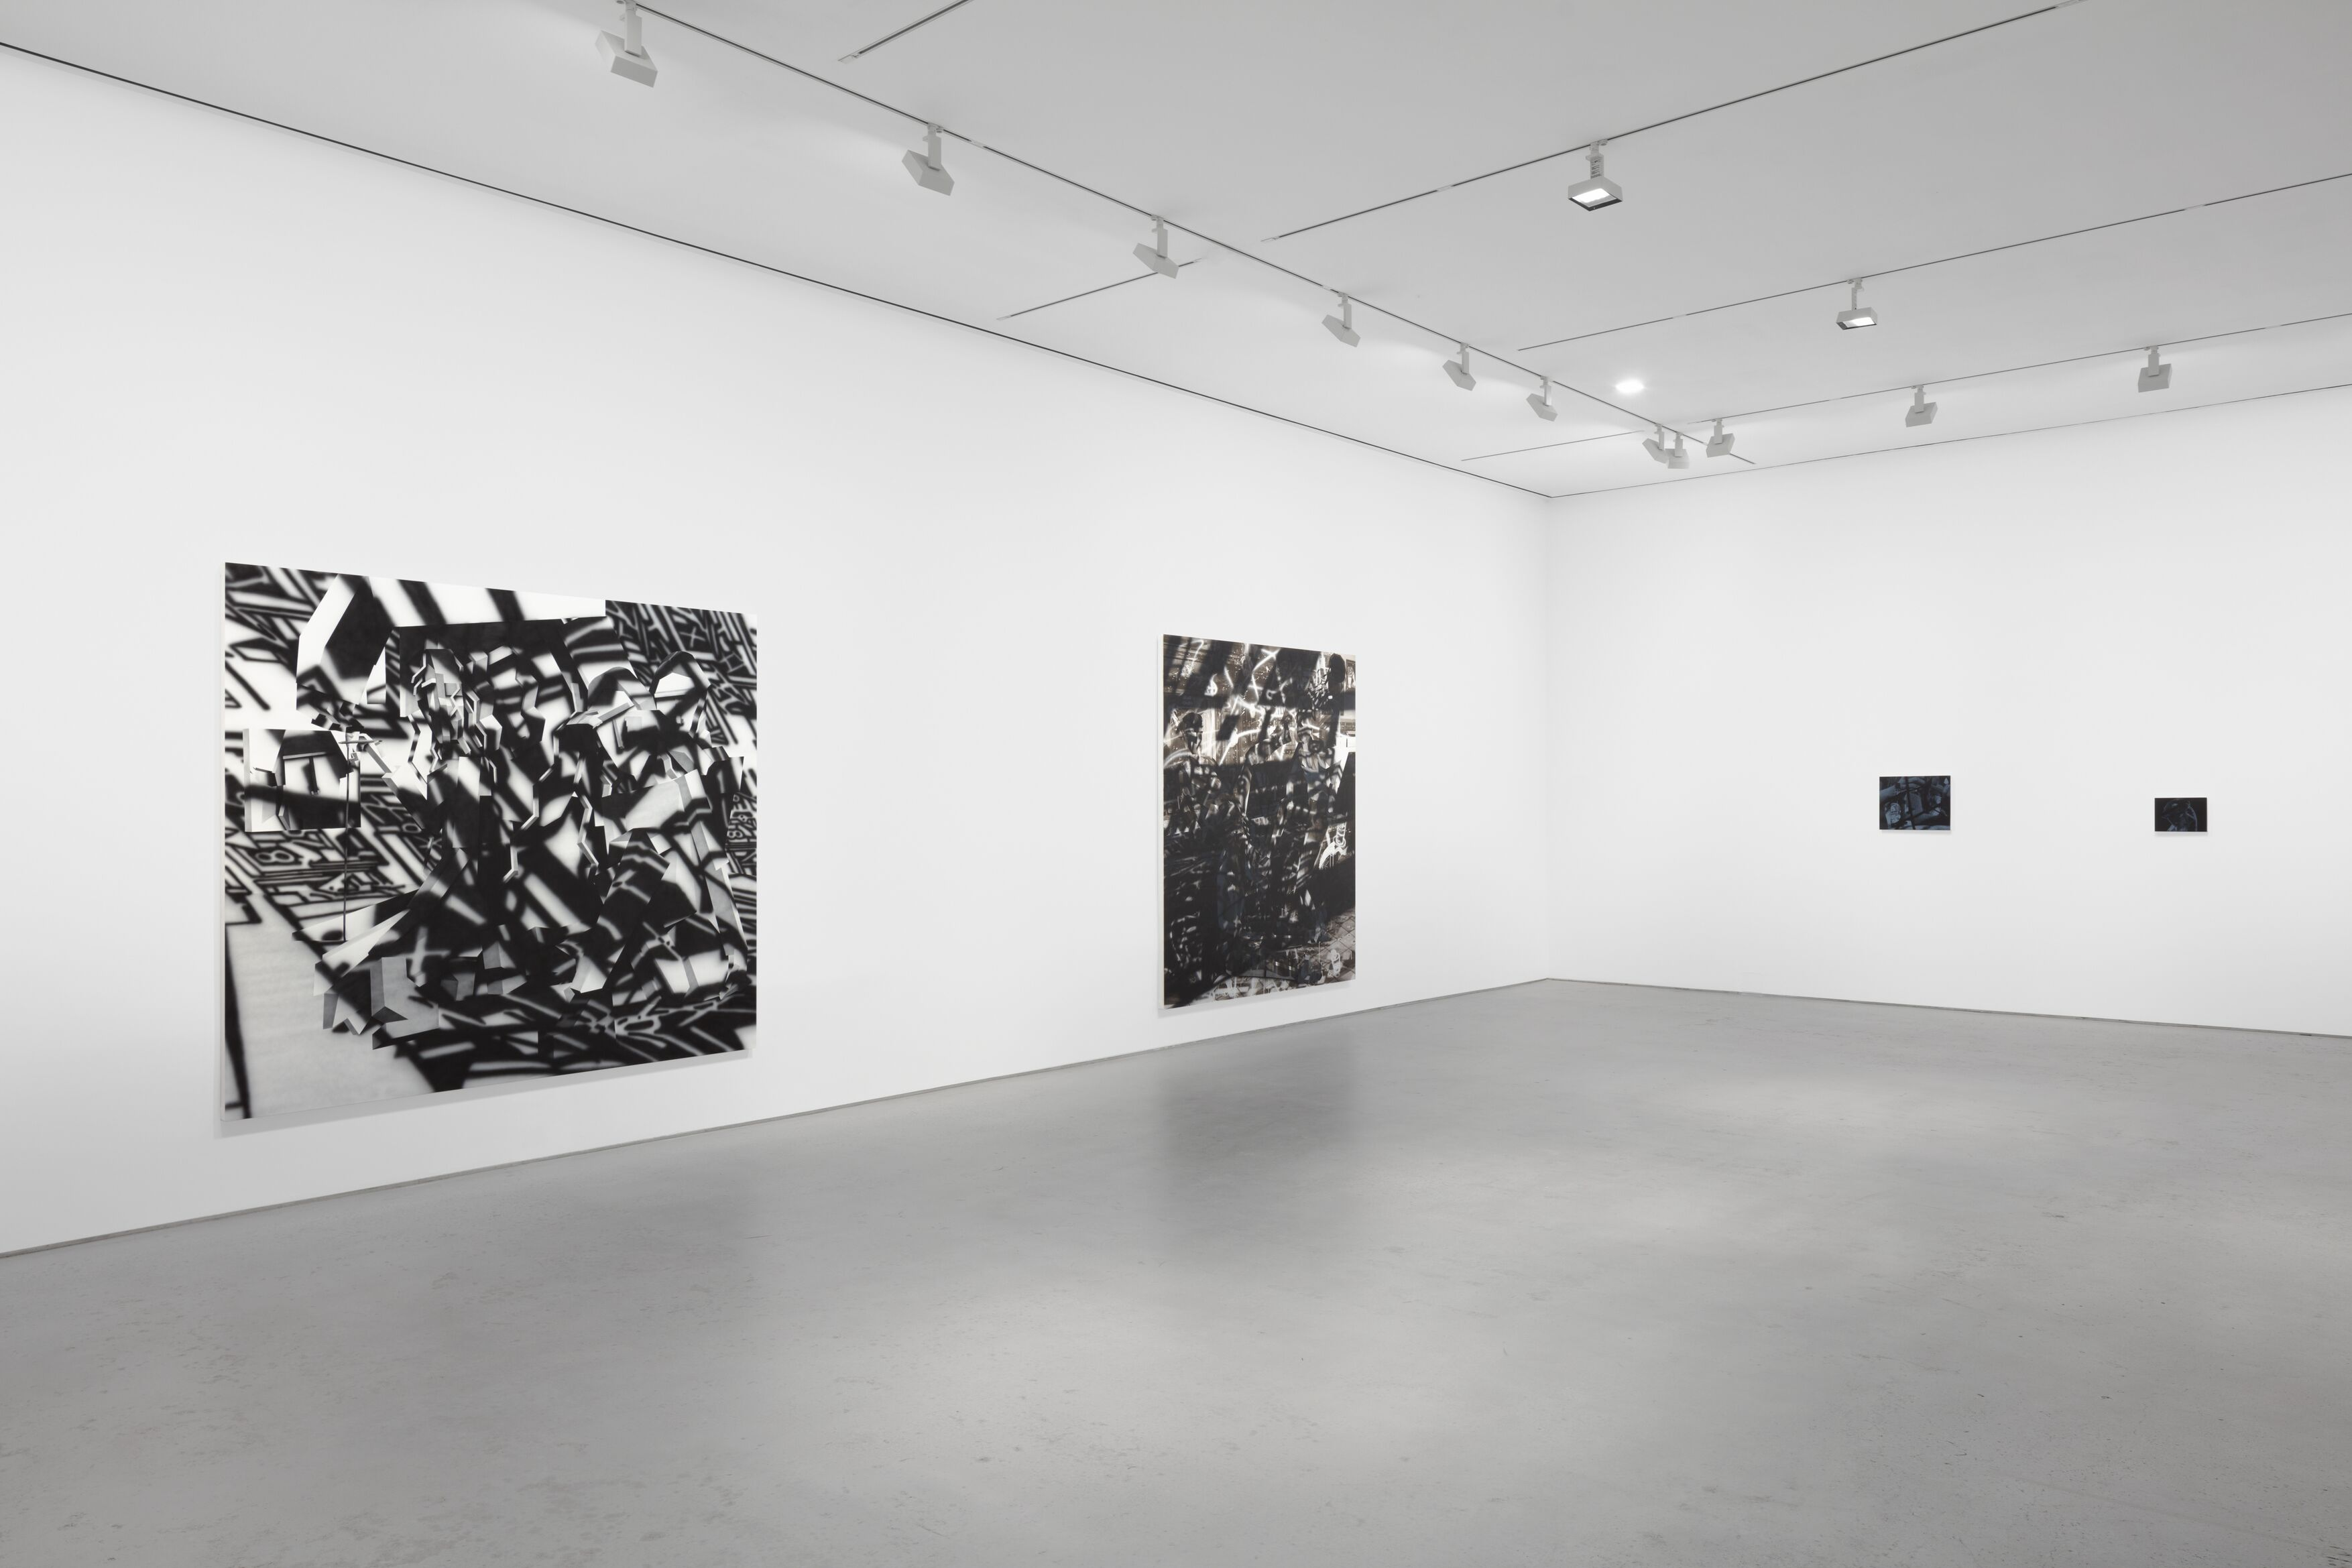 Installation view, 'Avery Singer. Reality Ender,' Hauser & Wirth New York, 22nd Street, 2021. Picturing: 'Happening,' 2021; 'Side Quest,' 2021; 'Sculptor (Study),' 2021; 'Sculptor,' 2021, © Avery Singer, courtesy the artist, Hauser & Wirth, and Kraupa-Tuskany Zeidler, Berlin Photo: Lance Brewer